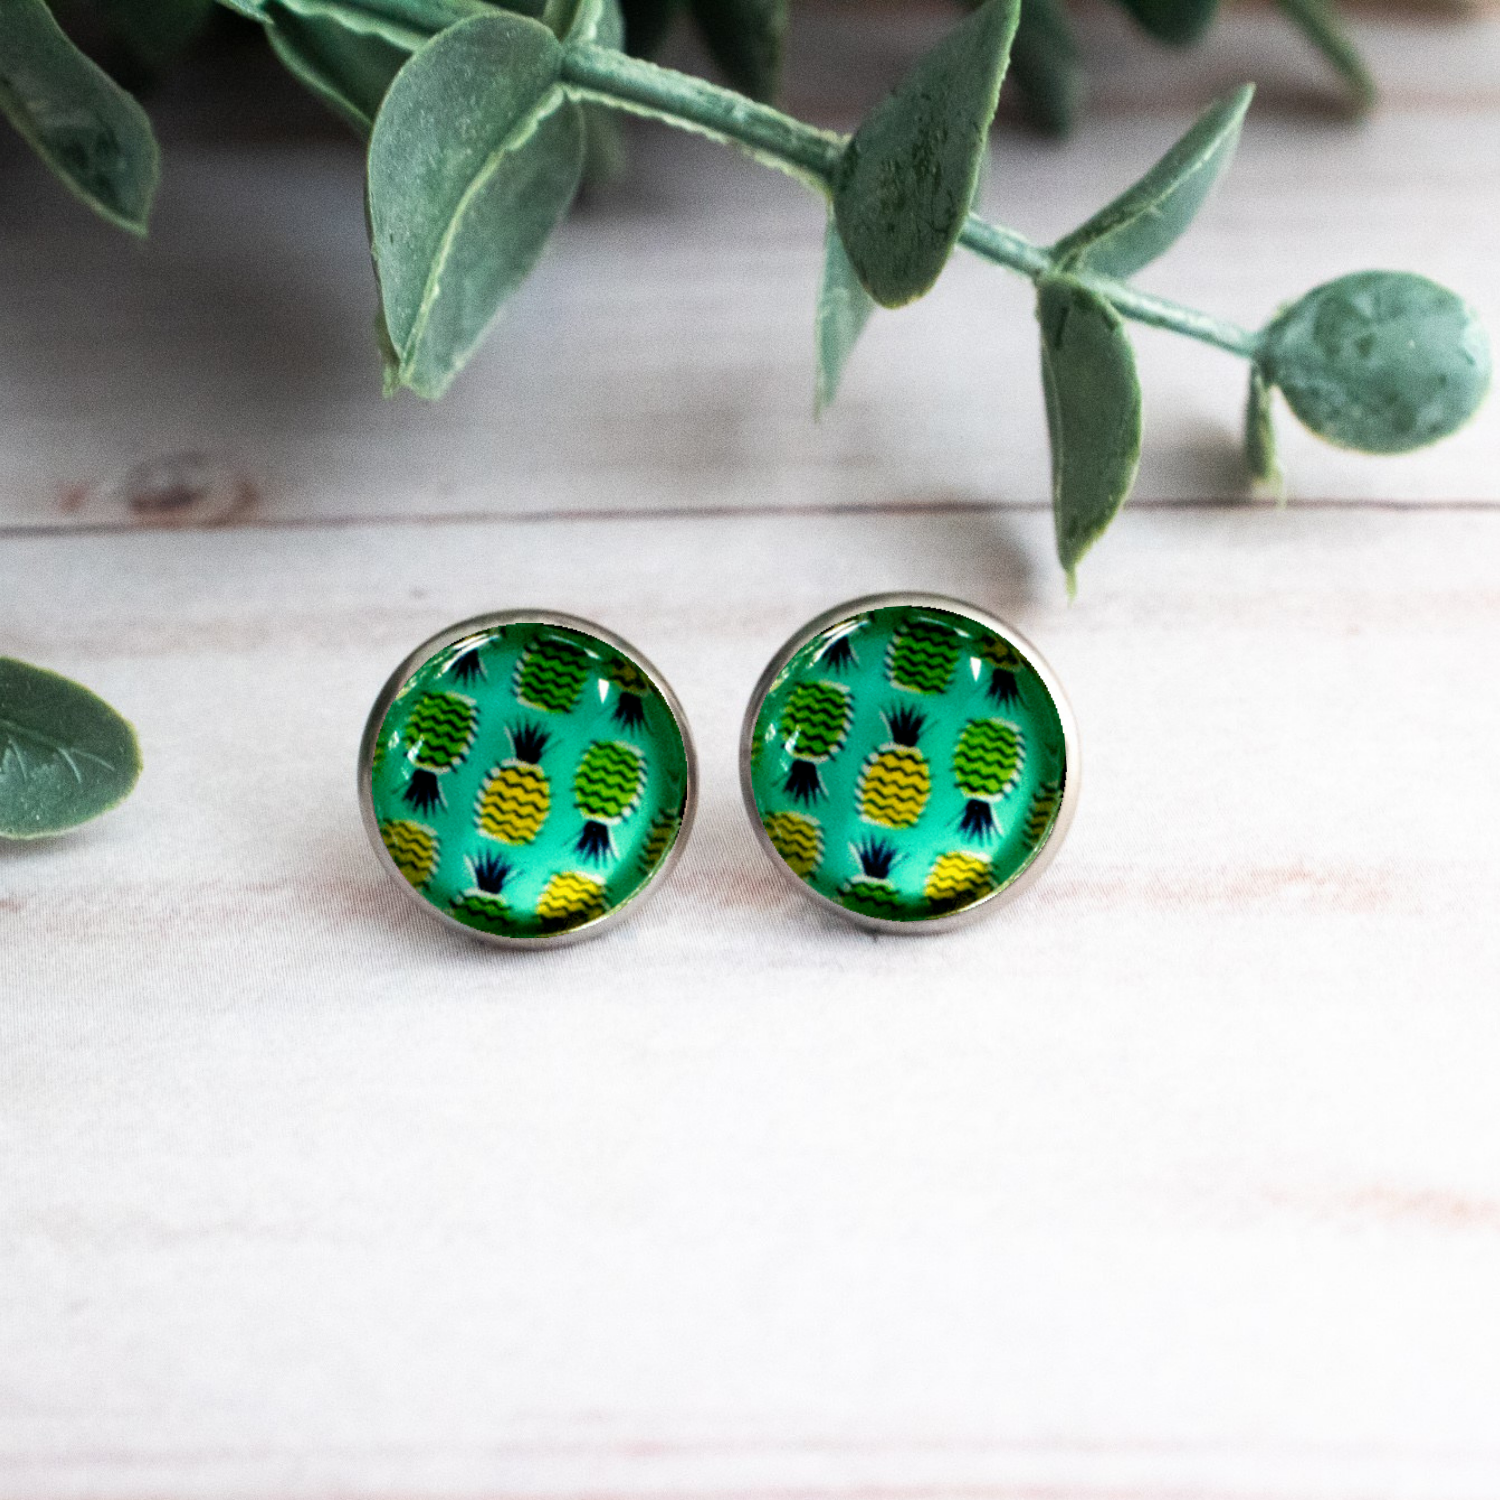 AQUA PINEAPPLE EARRINGS